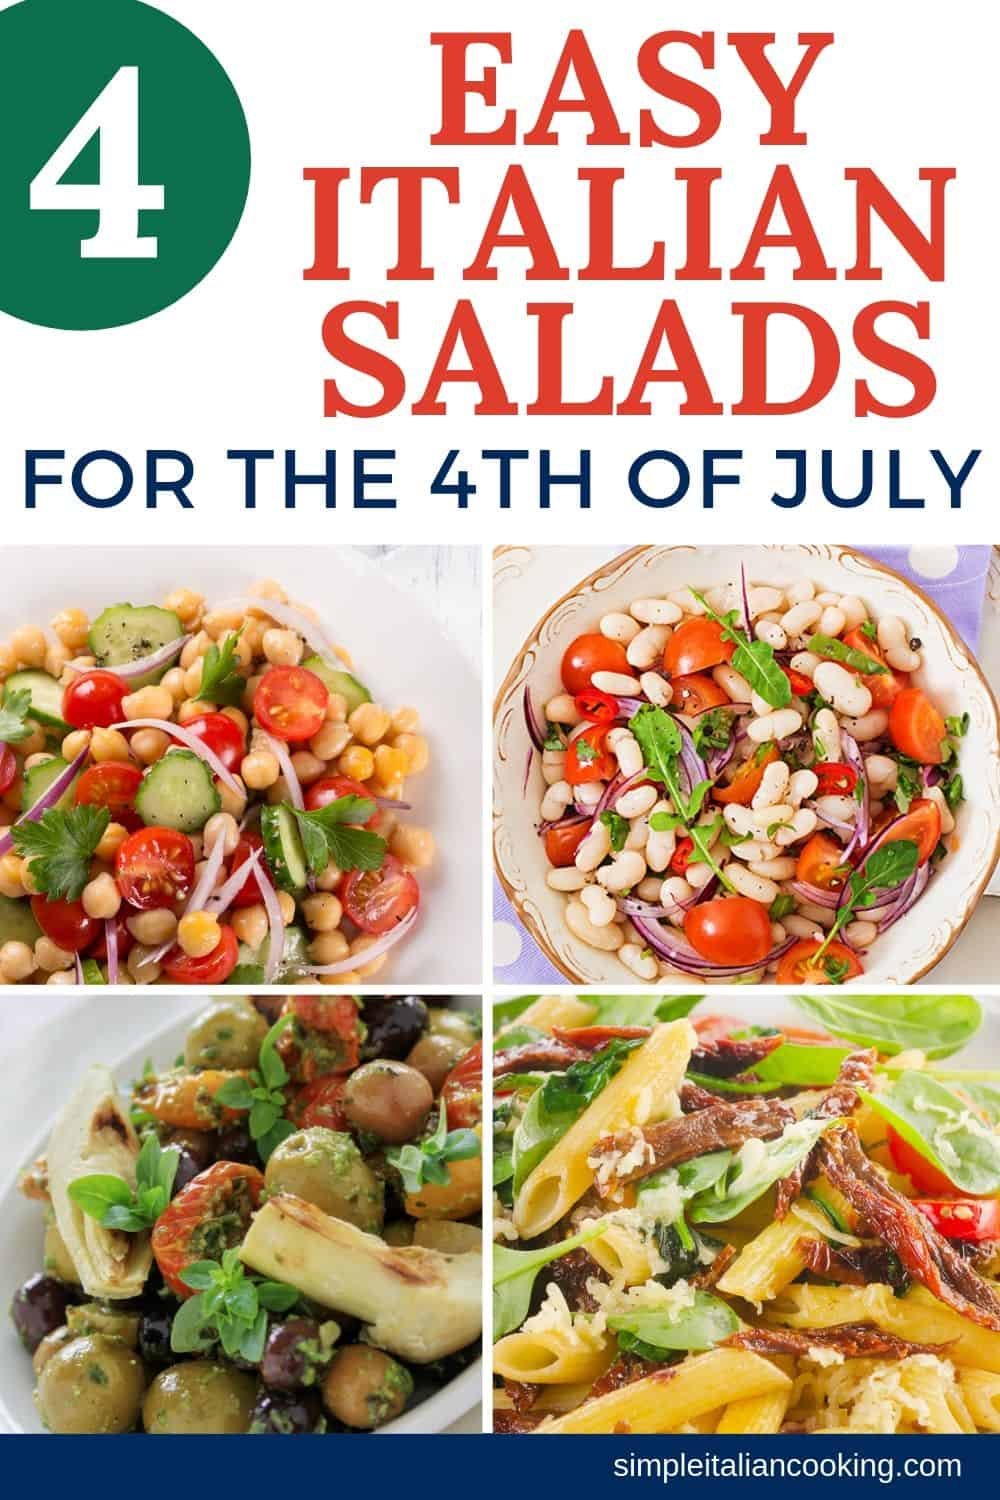 Need 4th of July salad recipe ideas? Enjoy these Easy Italian salad recipes for this special holiday! Easy to make and prepare the day before.  #4thofjulysalads #easyholidaysalads #italiansalads #saladsforthe4th #4thofjulyvegetariansalad #saladideas